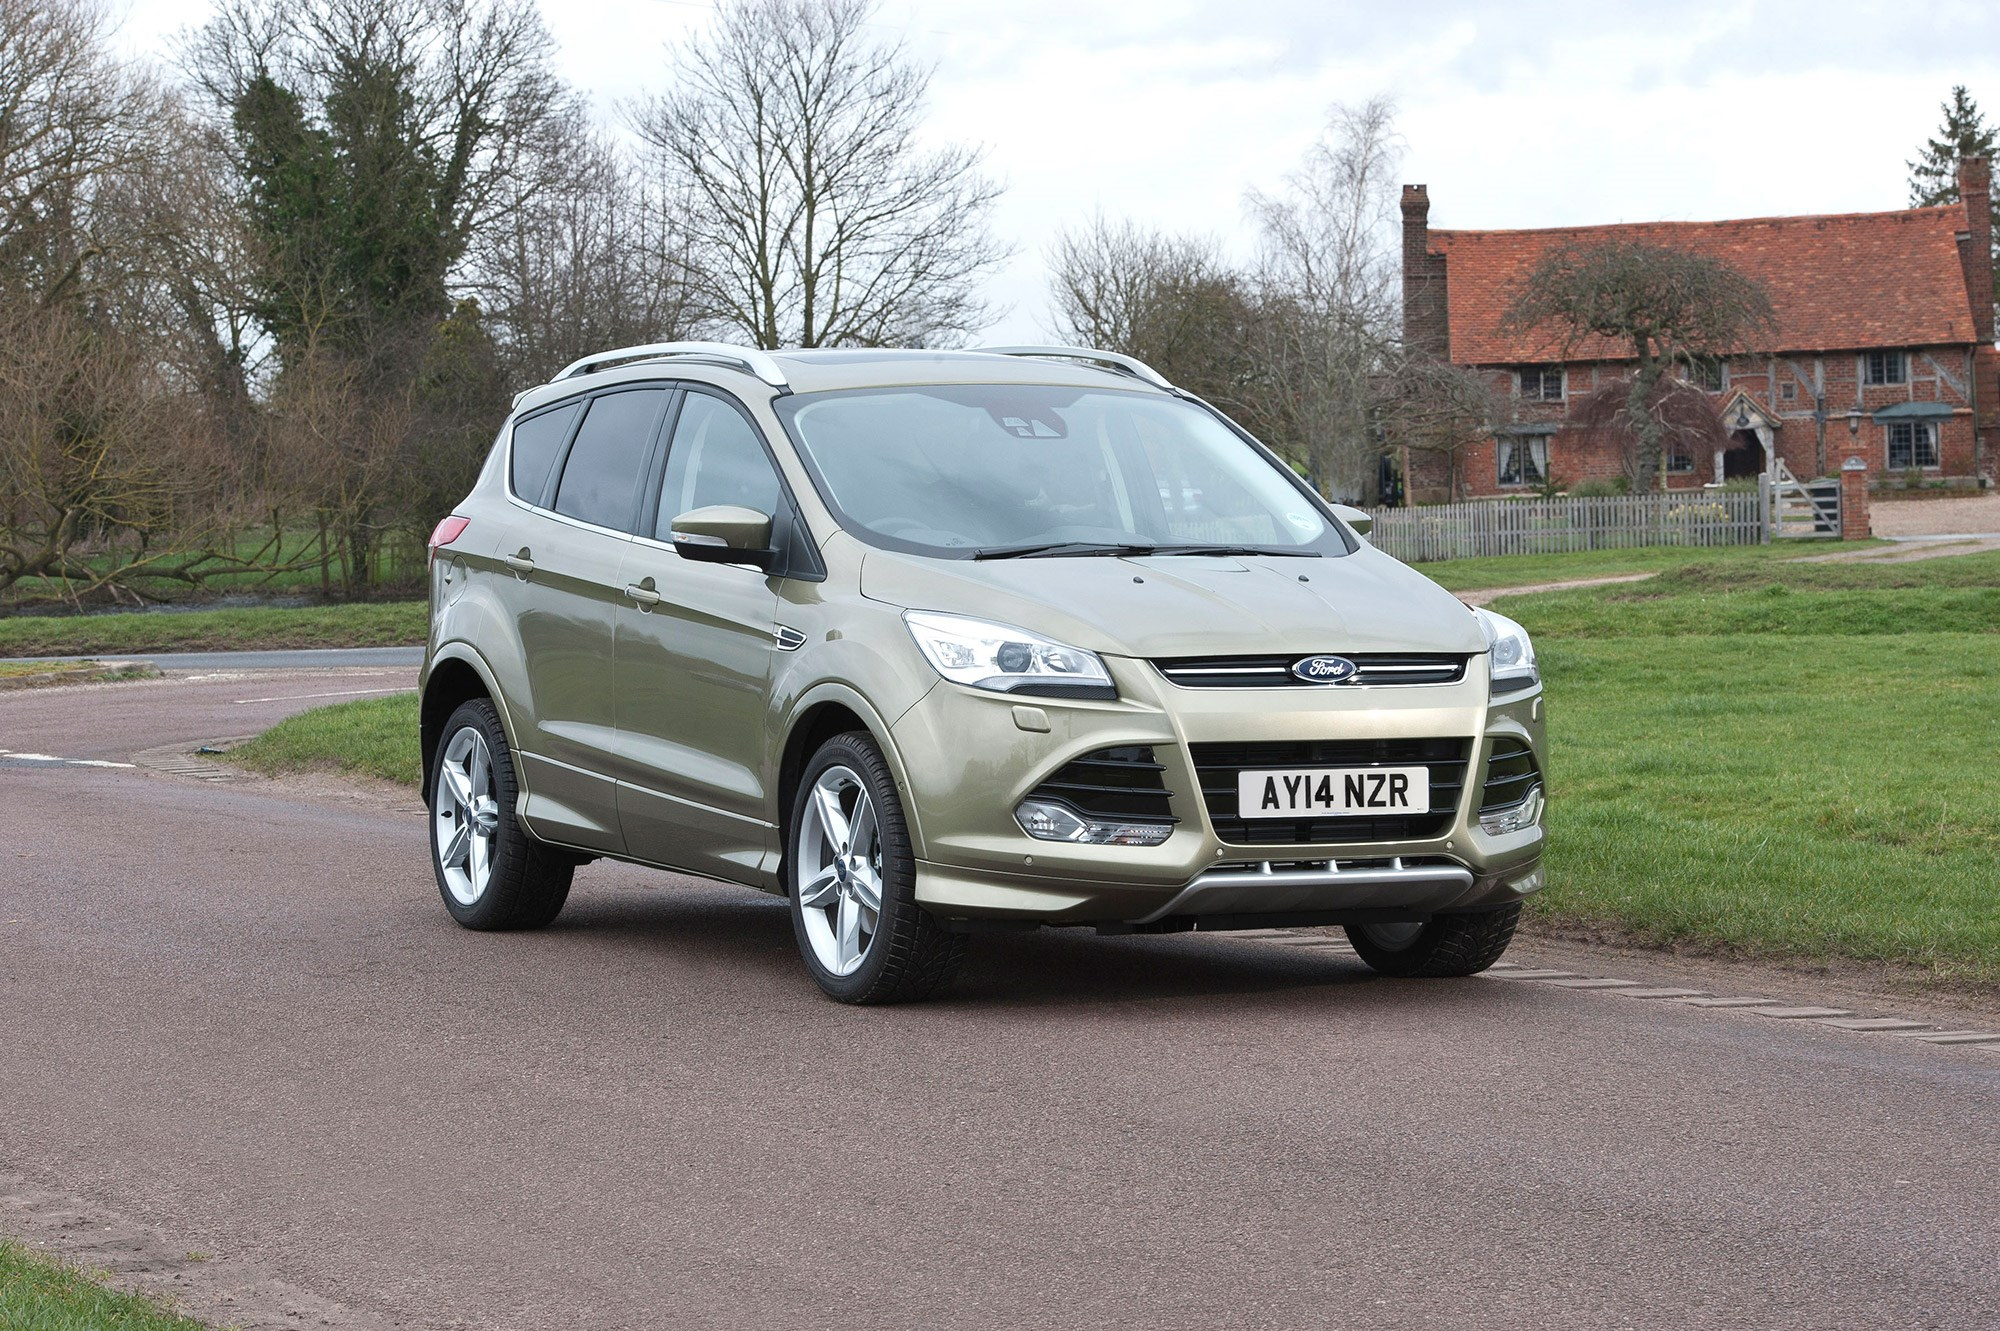 Ford Escape Lease Deals >> Ford Kuga 2.0 TDCI 178bhp (2015) review | CAR Magazine